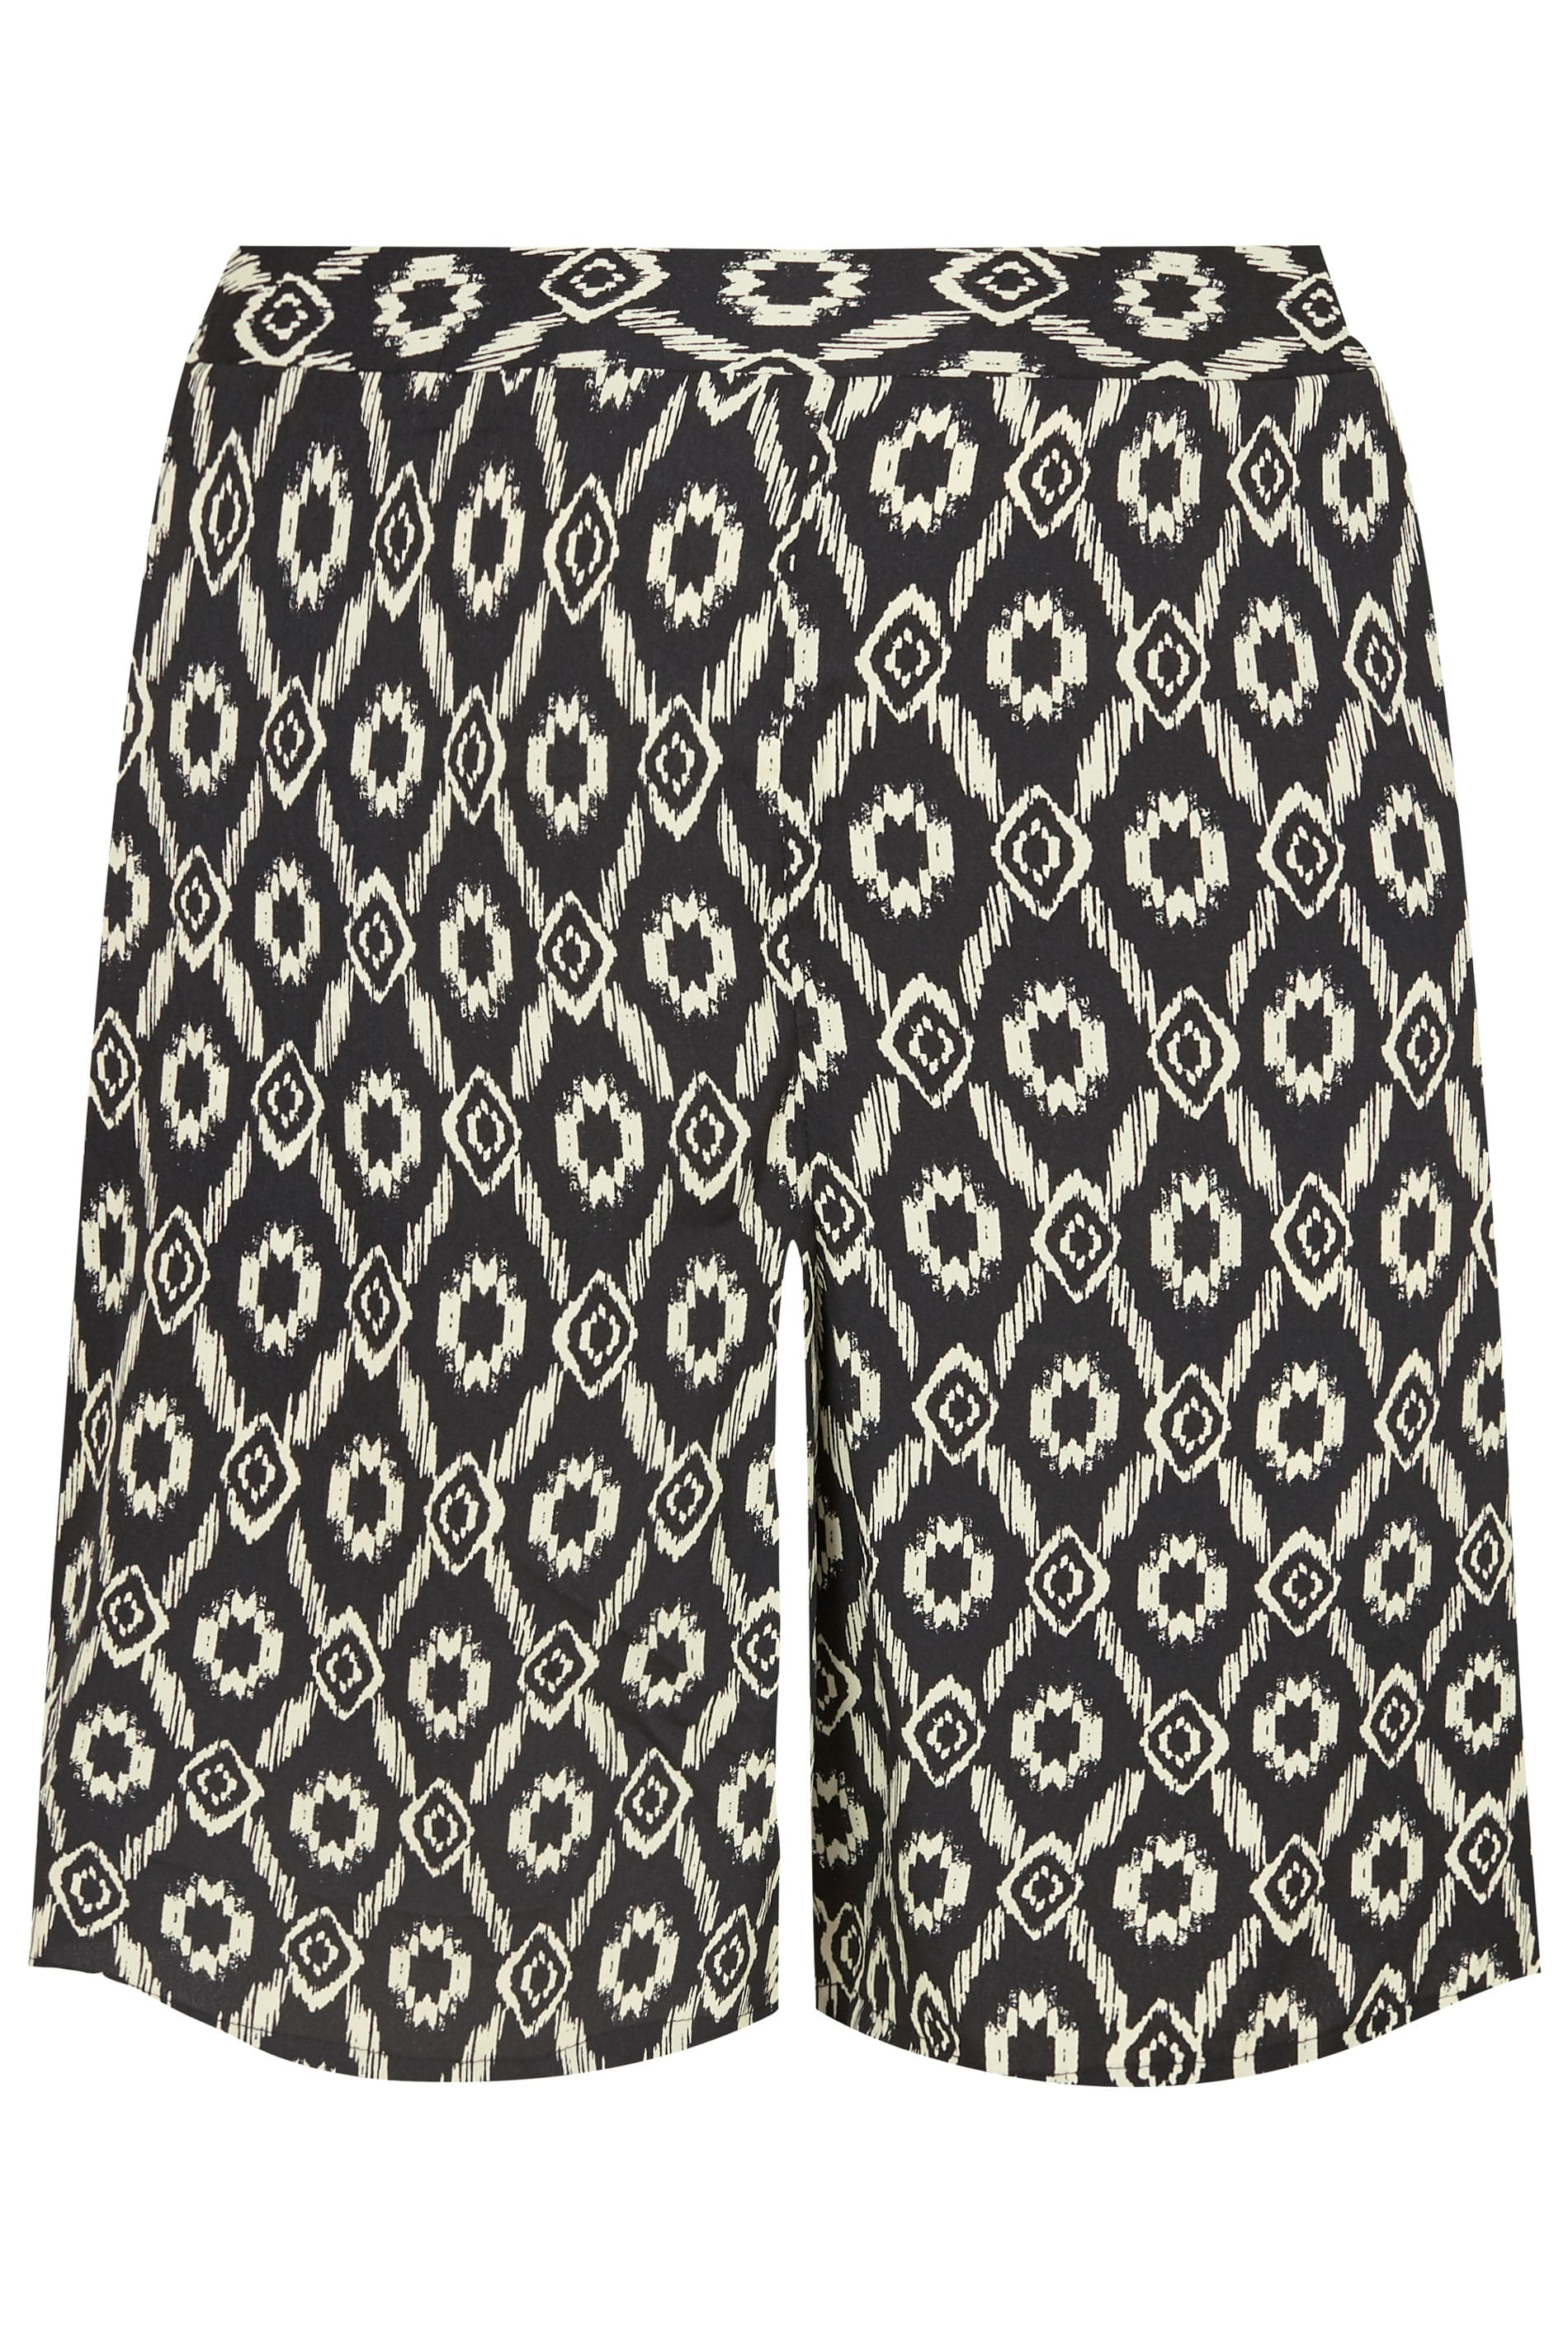 chiffon shorts mit ethnoprint in schwarz beige in gro en gr en 44 bis 64. Black Bedroom Furniture Sets. Home Design Ideas